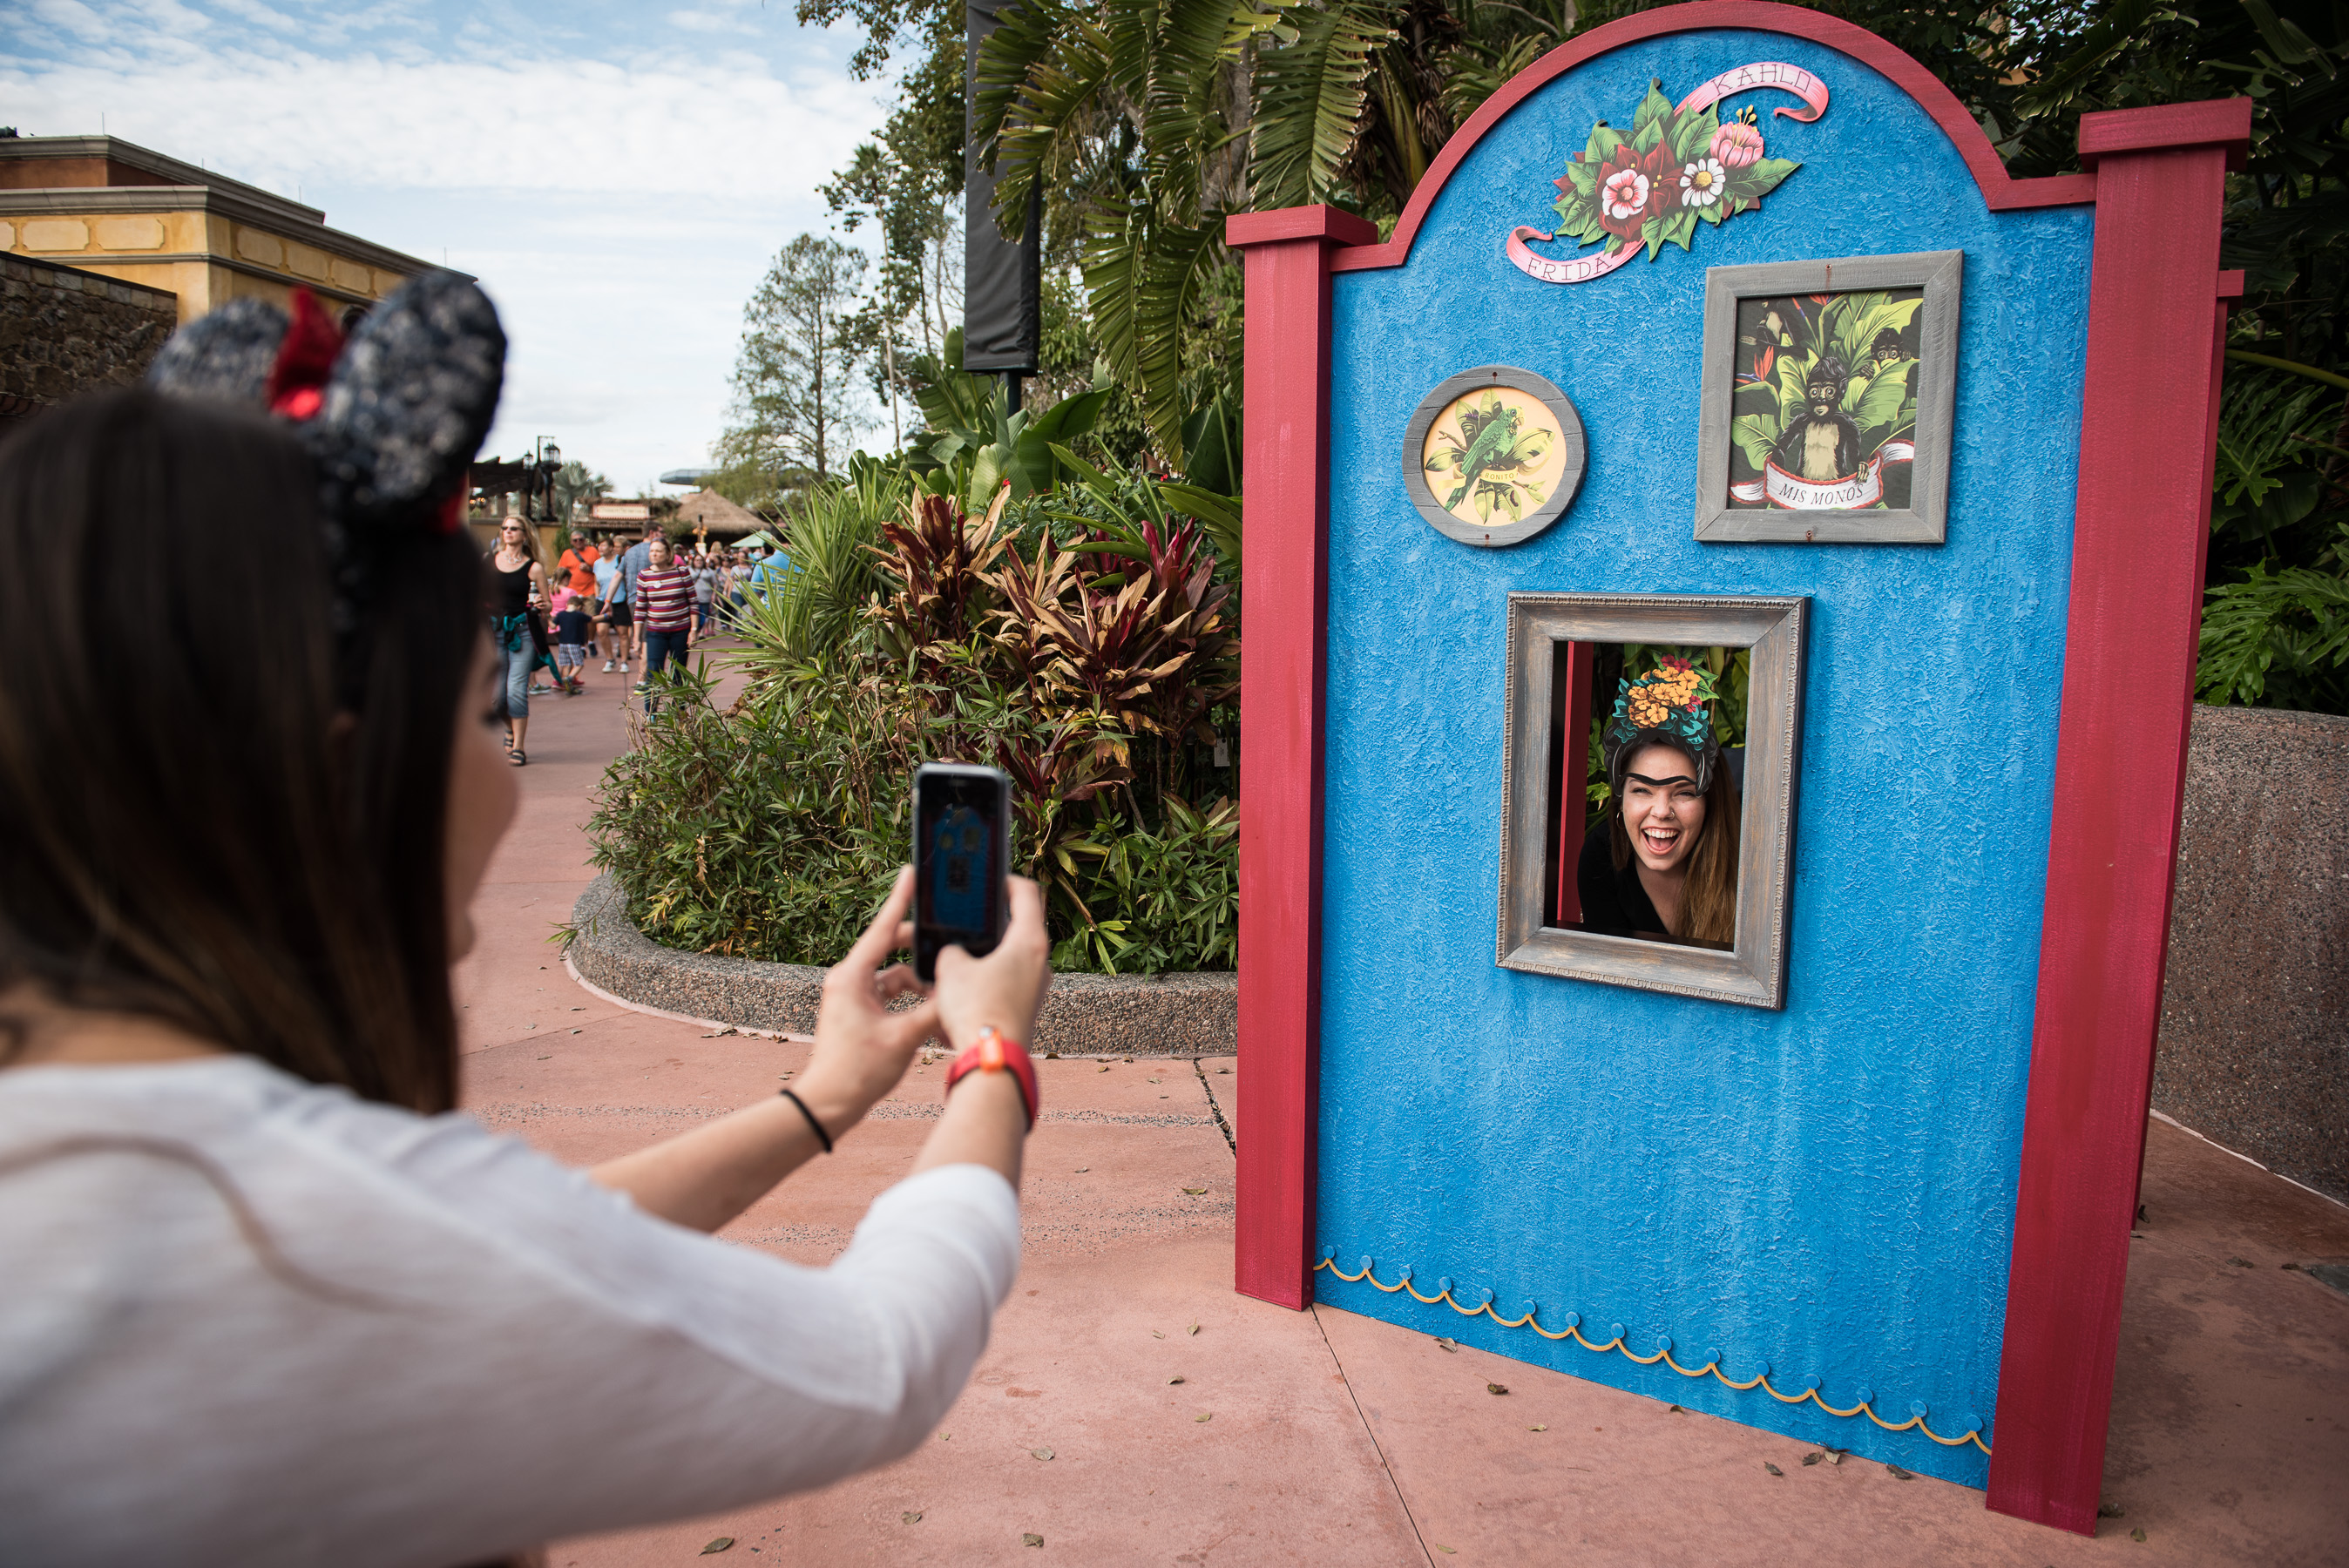 Celebrate the Arts Once Again Beginning January with the 2019 Epcot International Festival of the Arts